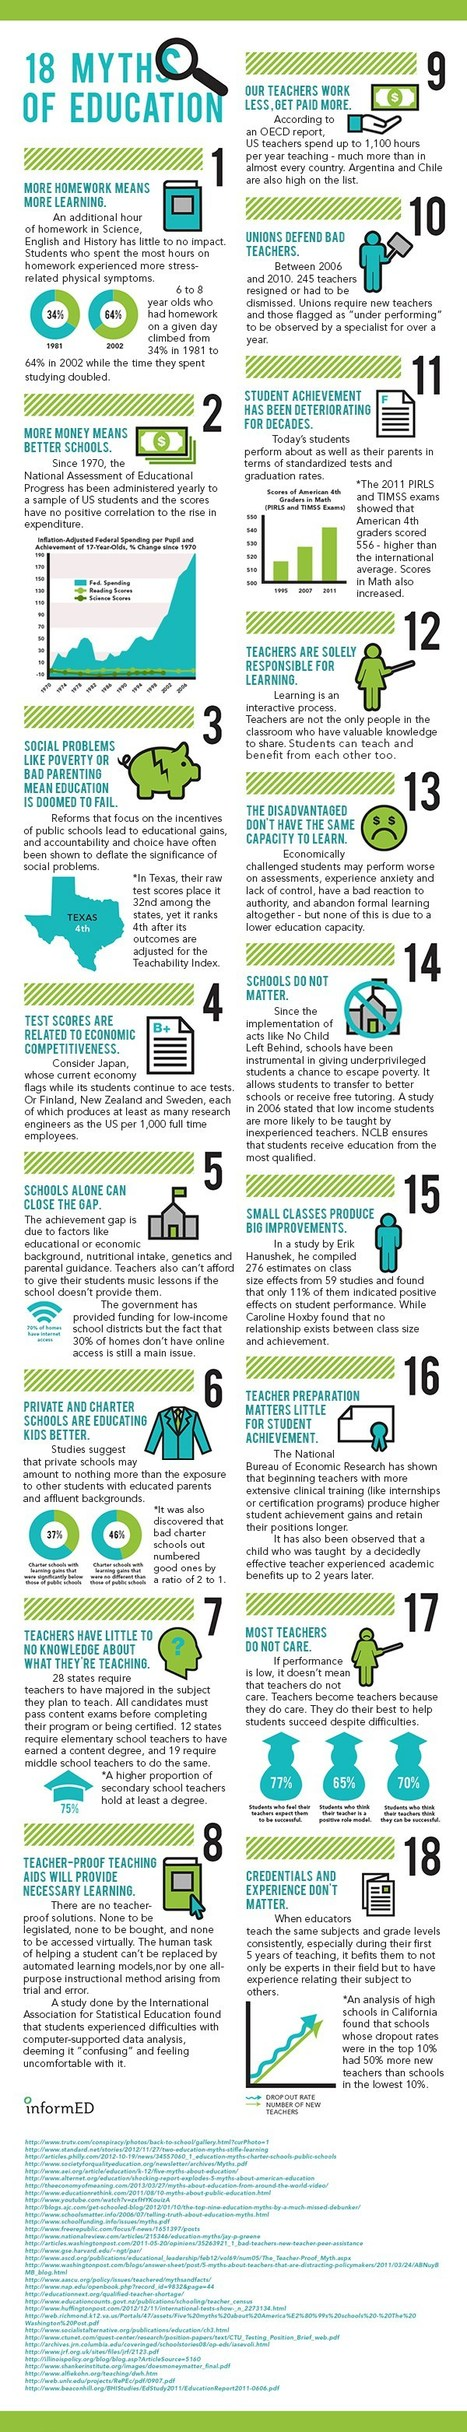 18 Myths of Education #infographic #education #myths | Organización y Futuro | Scoop.it